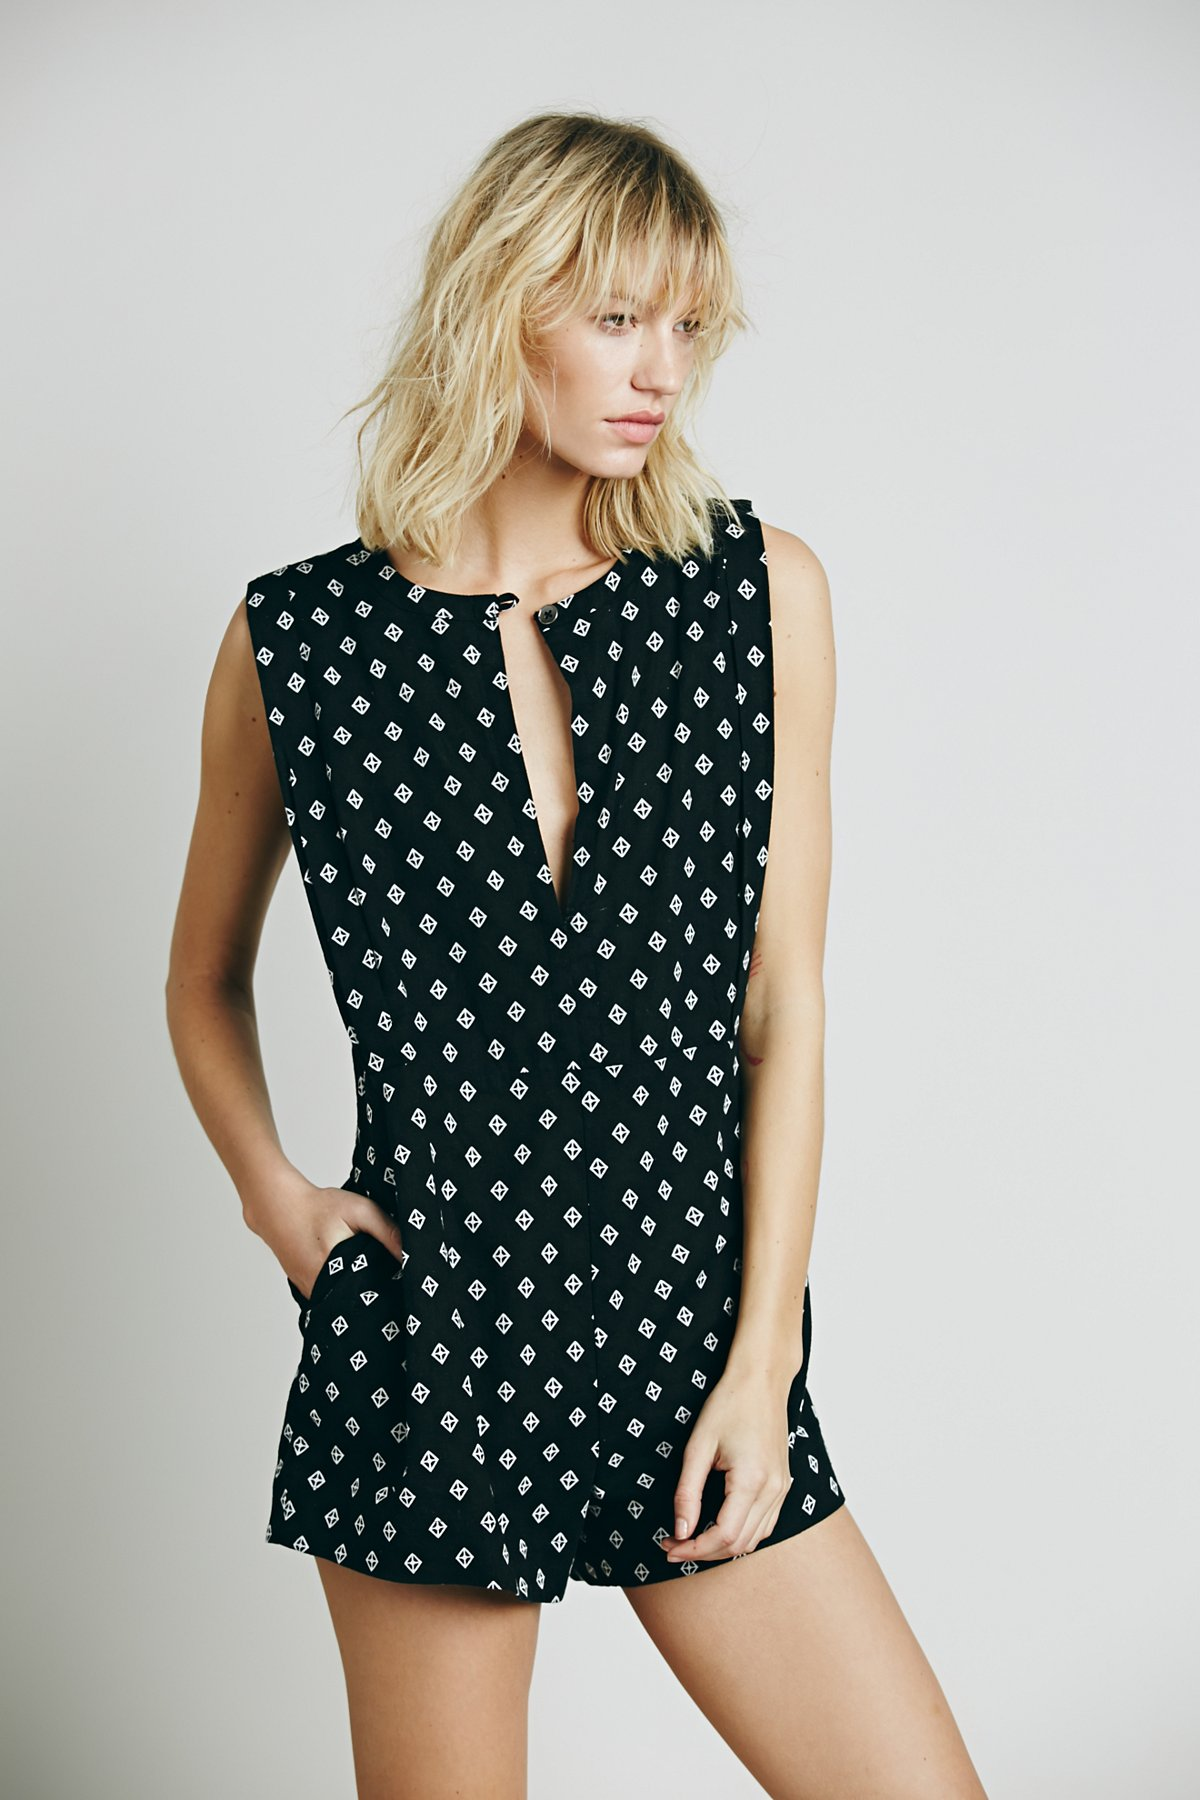 The Reformer Playsuit